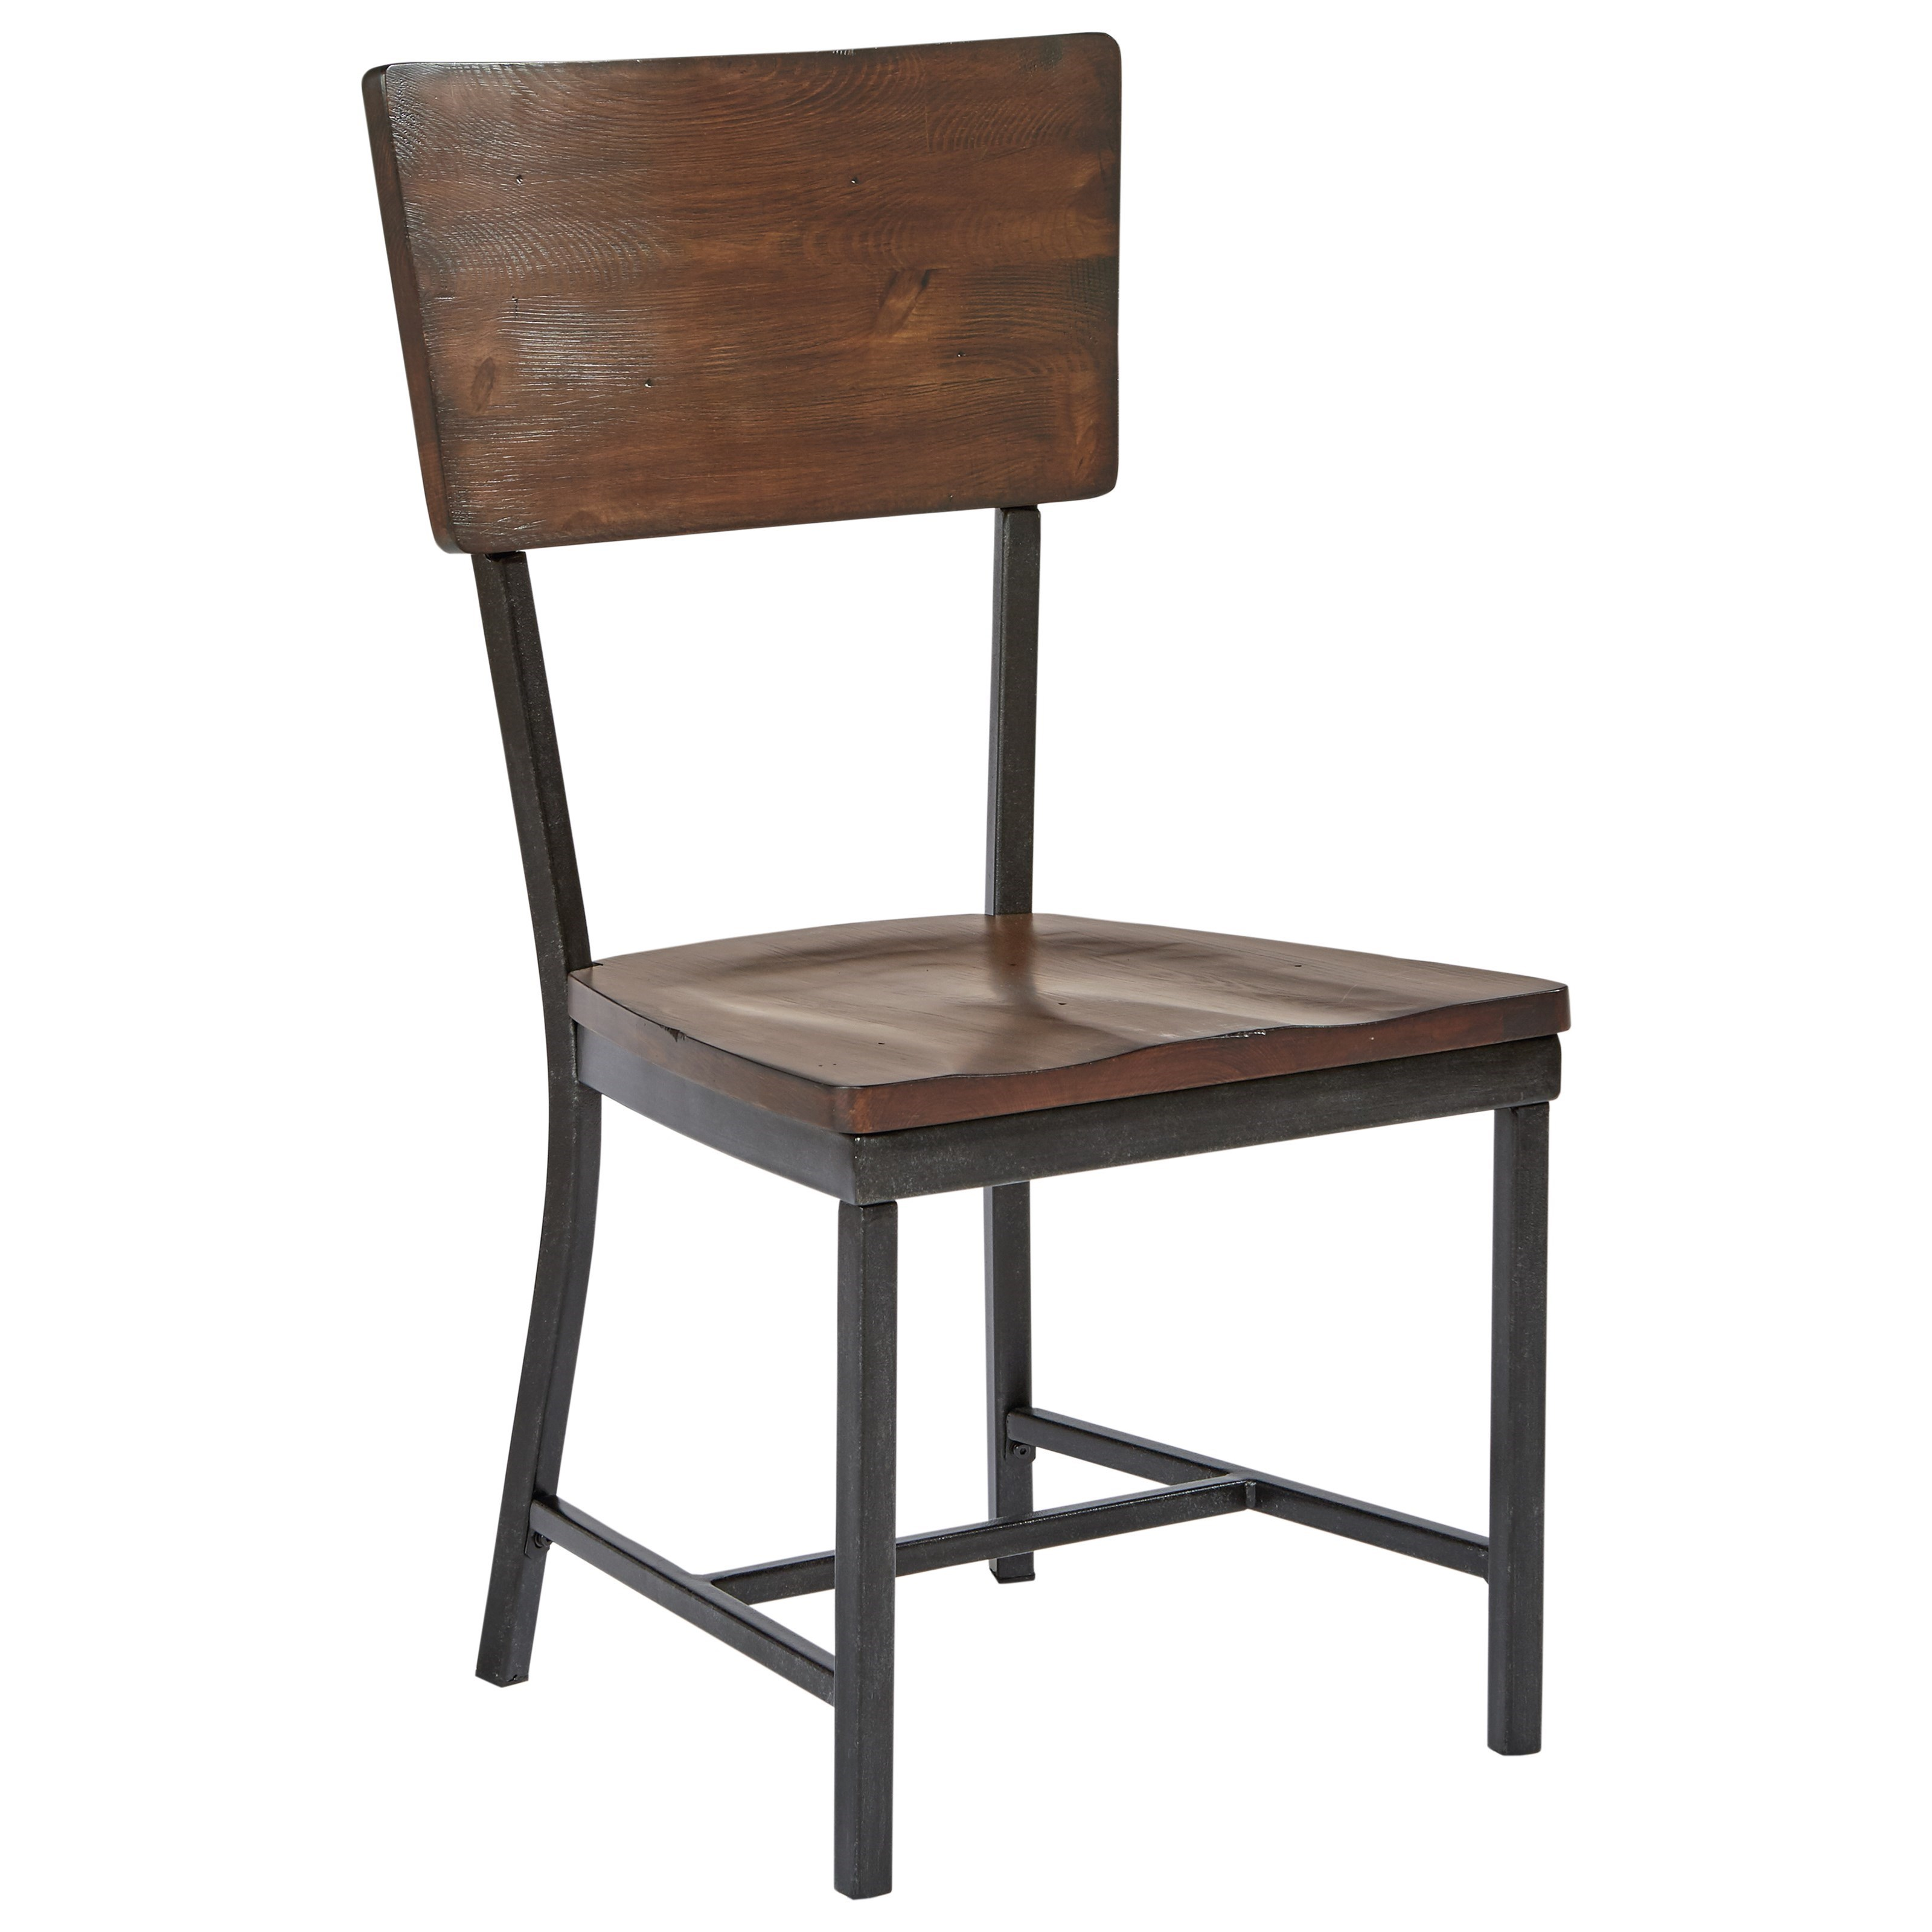 Magnolia home by joanna gaines industrial rustic side for Ivan smith furniture